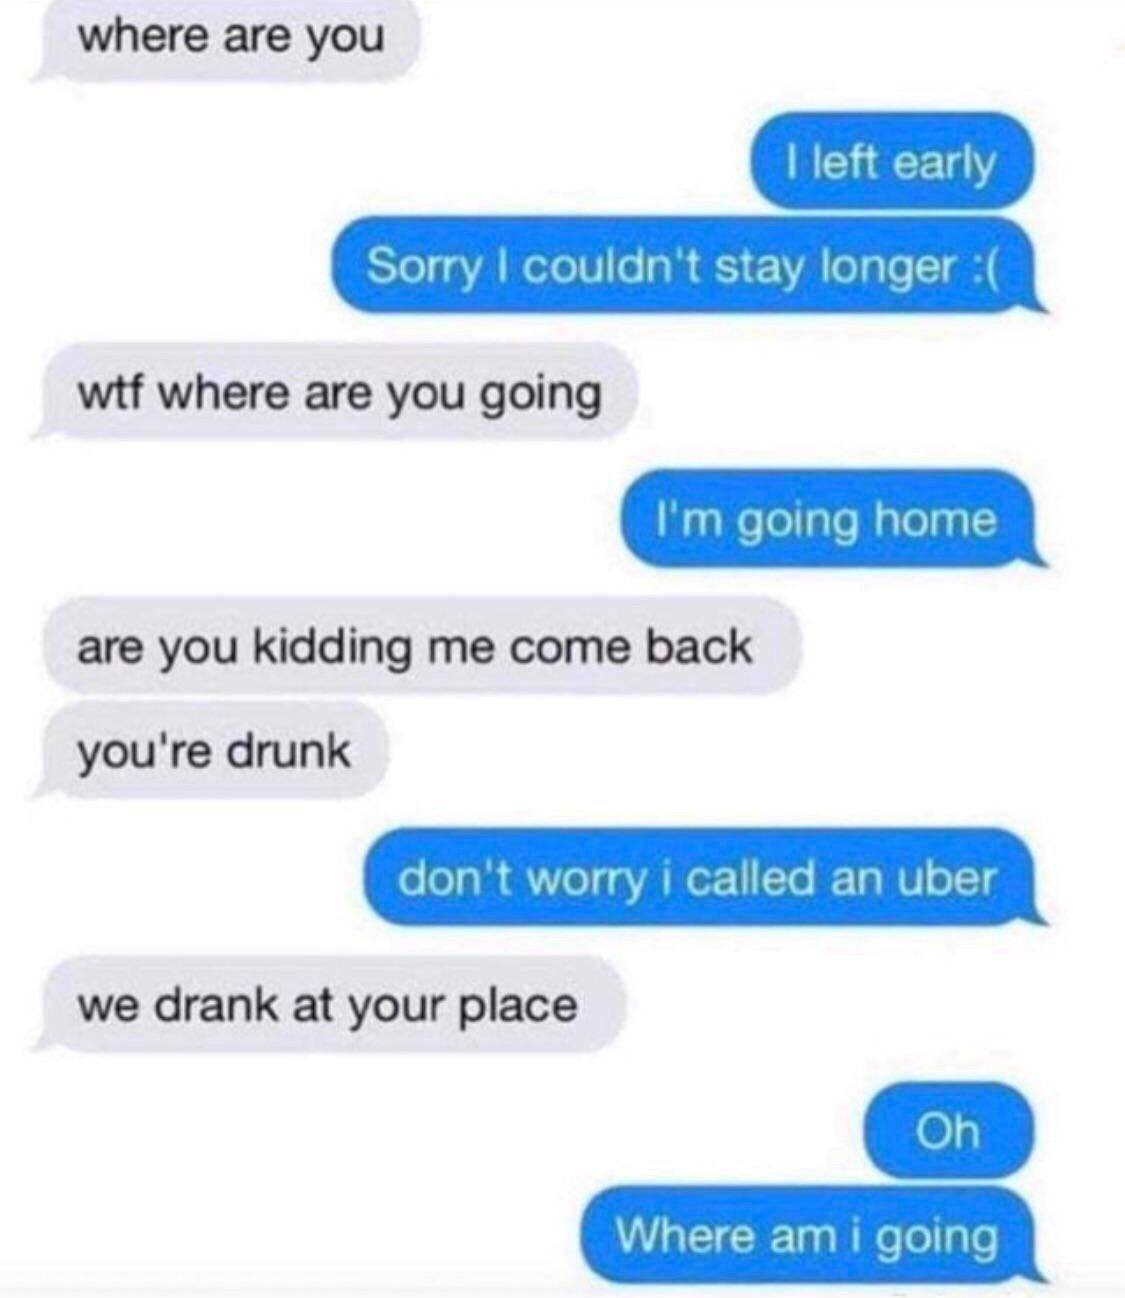 19 Pictures That Prove Drunk People Are The Absolute Best Type Of People